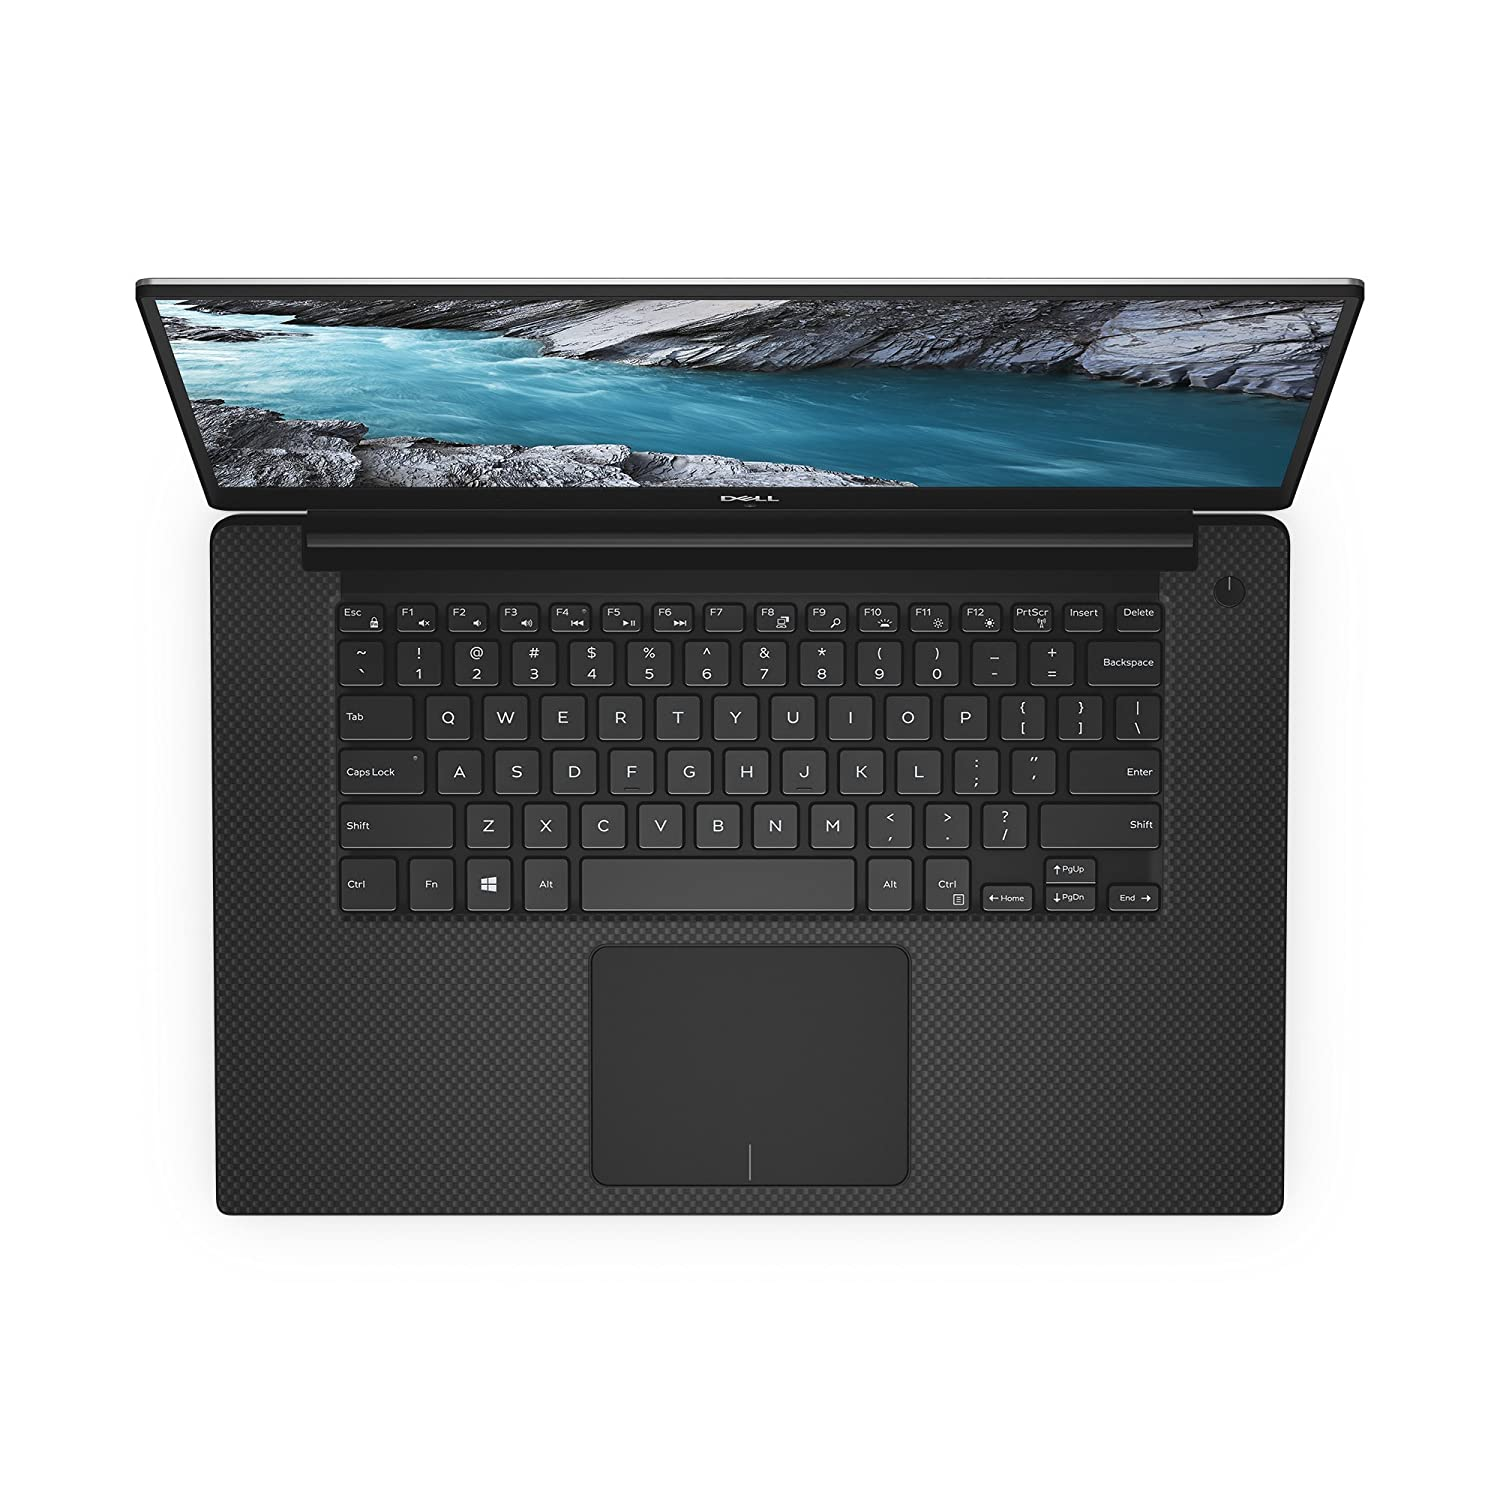 Amazon ca Laptops: Dell XPS 9570 Gaming Laptop 15 6